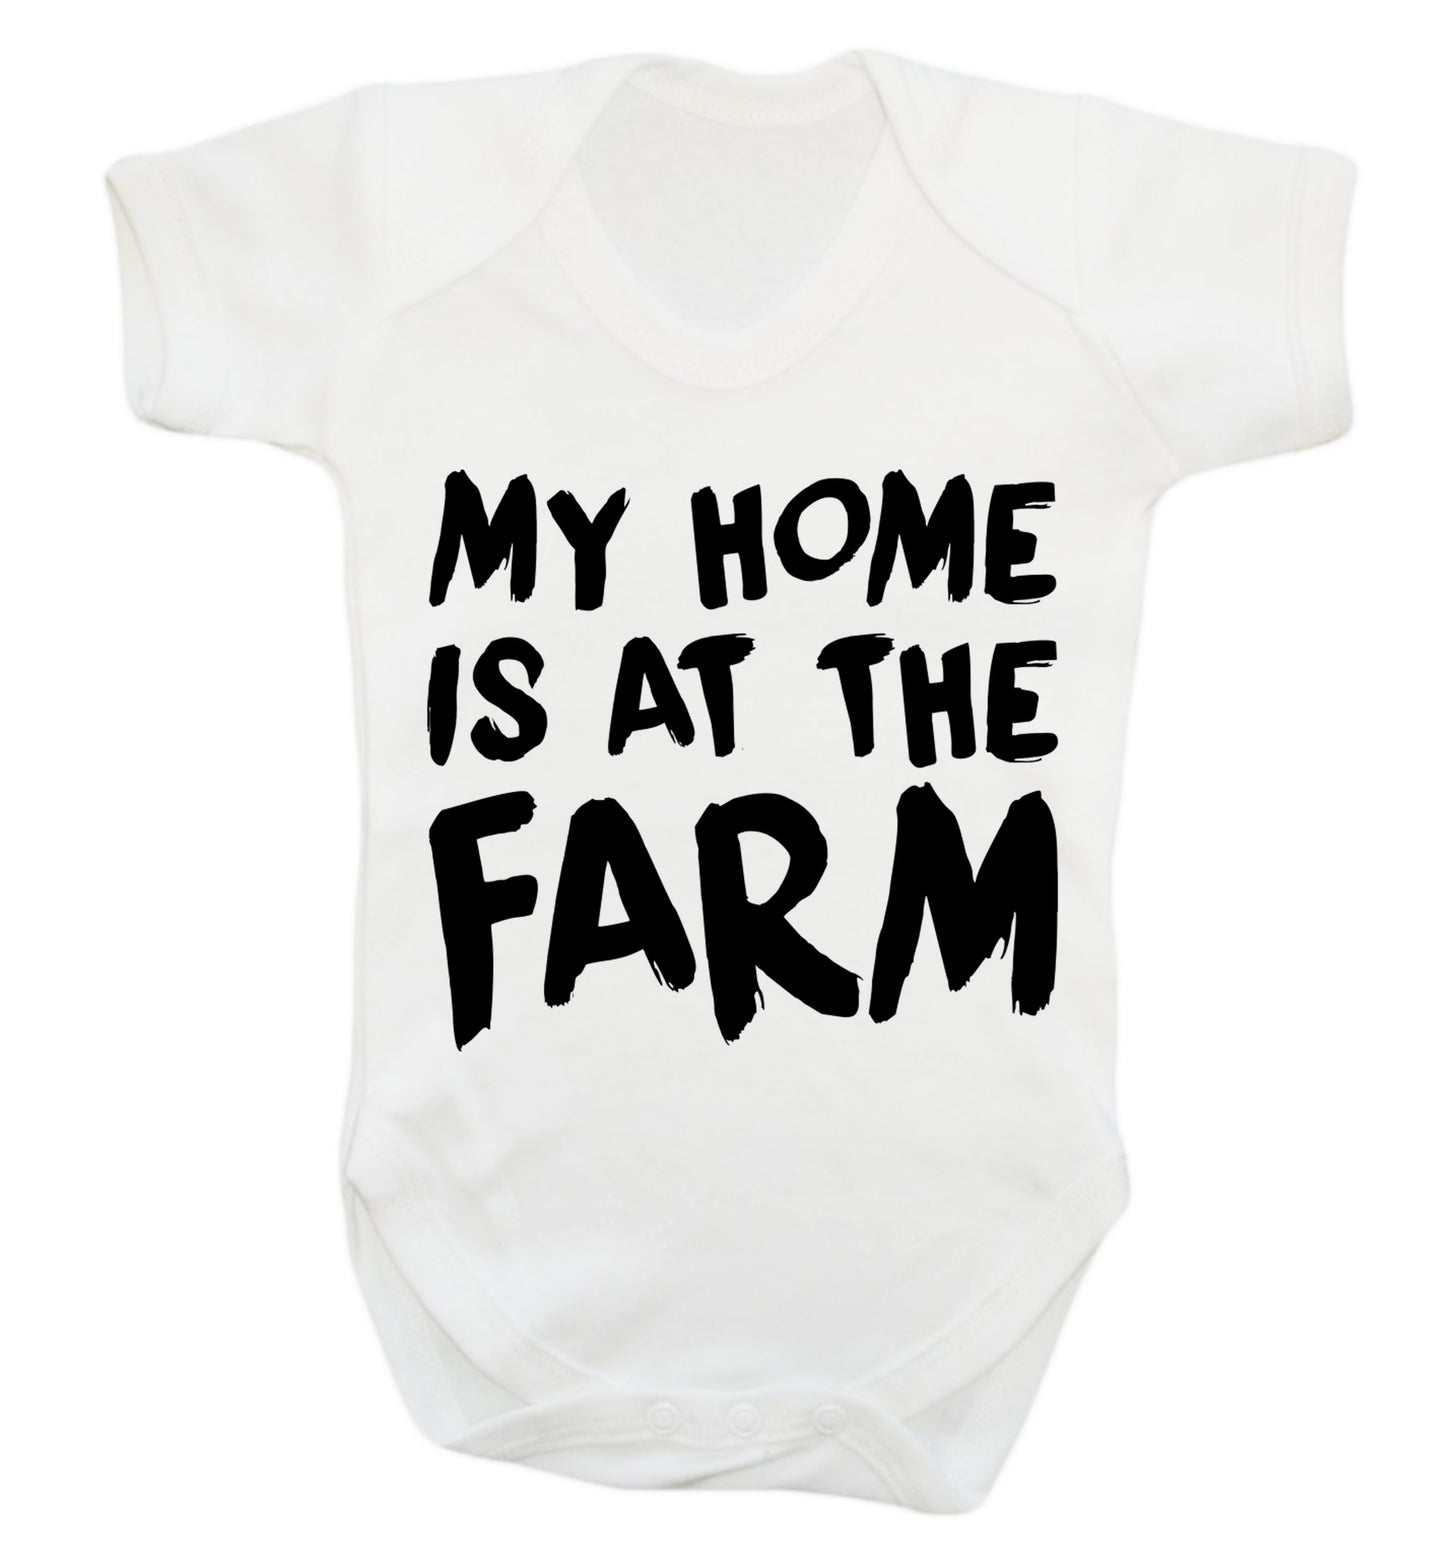 My home is at the farm Baby Vest white 18-24 months